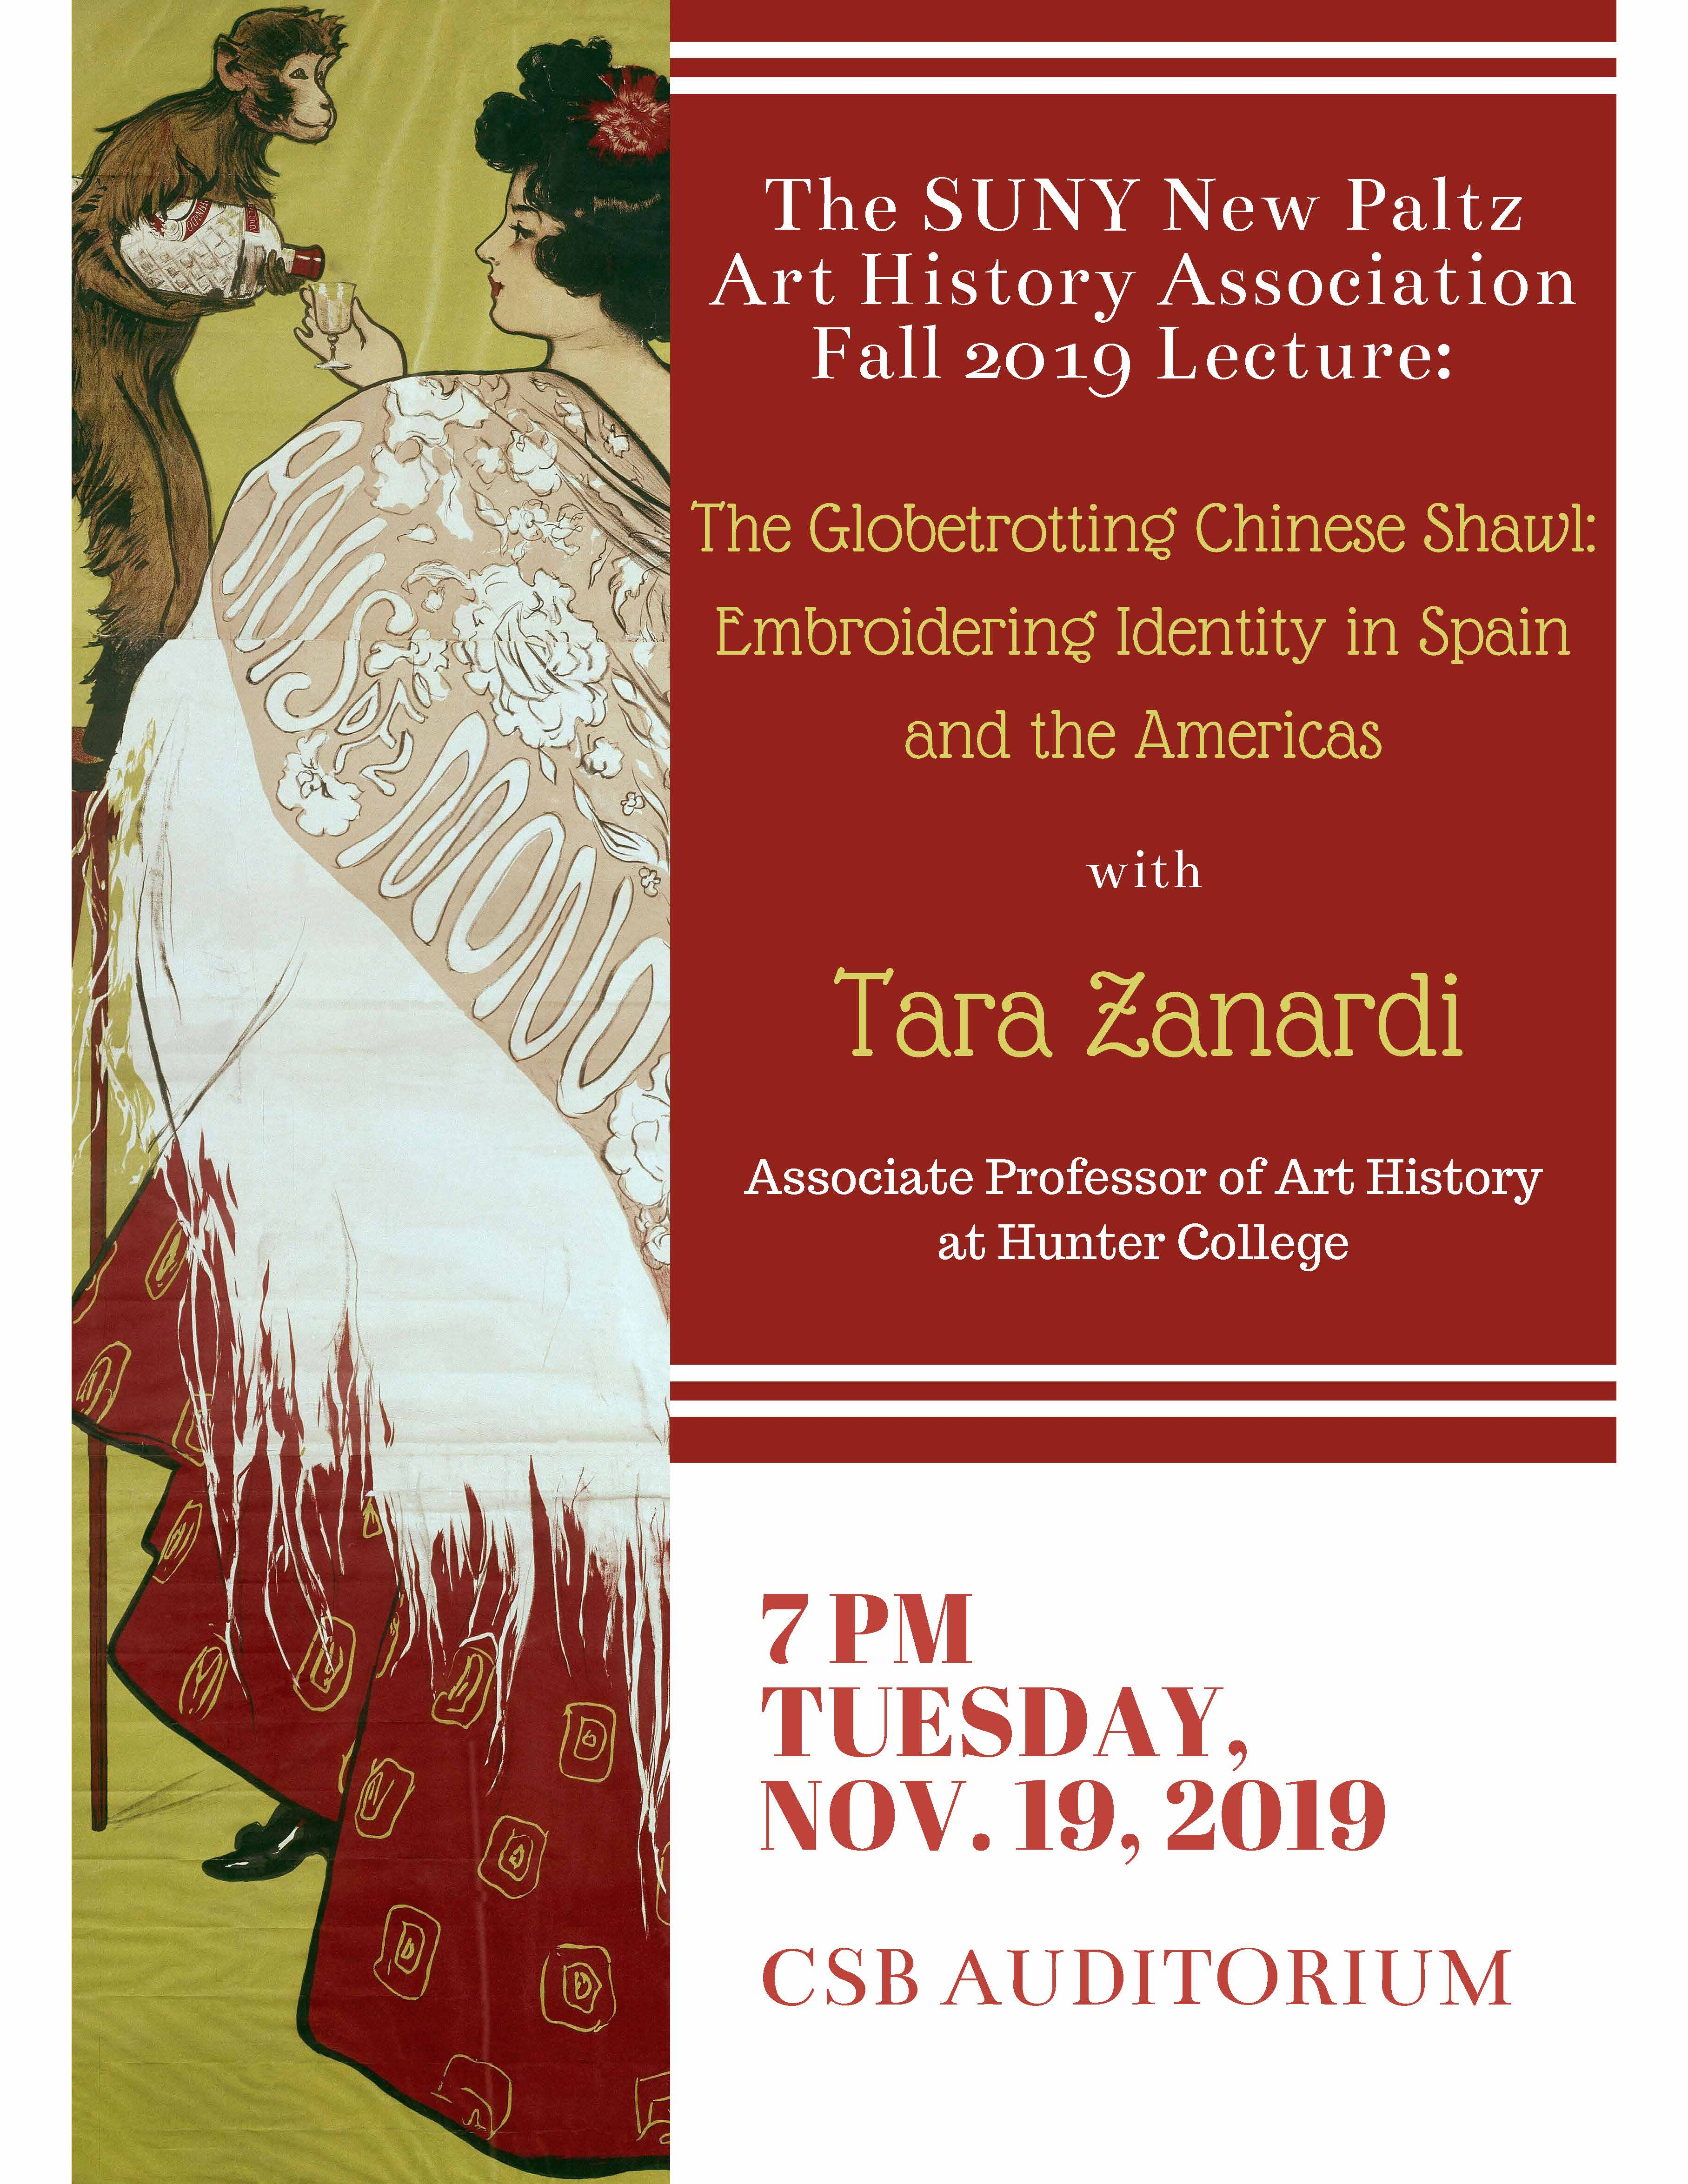 Poster image for Art History Association Speaker Tara Zanardi Chinese Export Shawls adoption in dress in Spain and the Americas